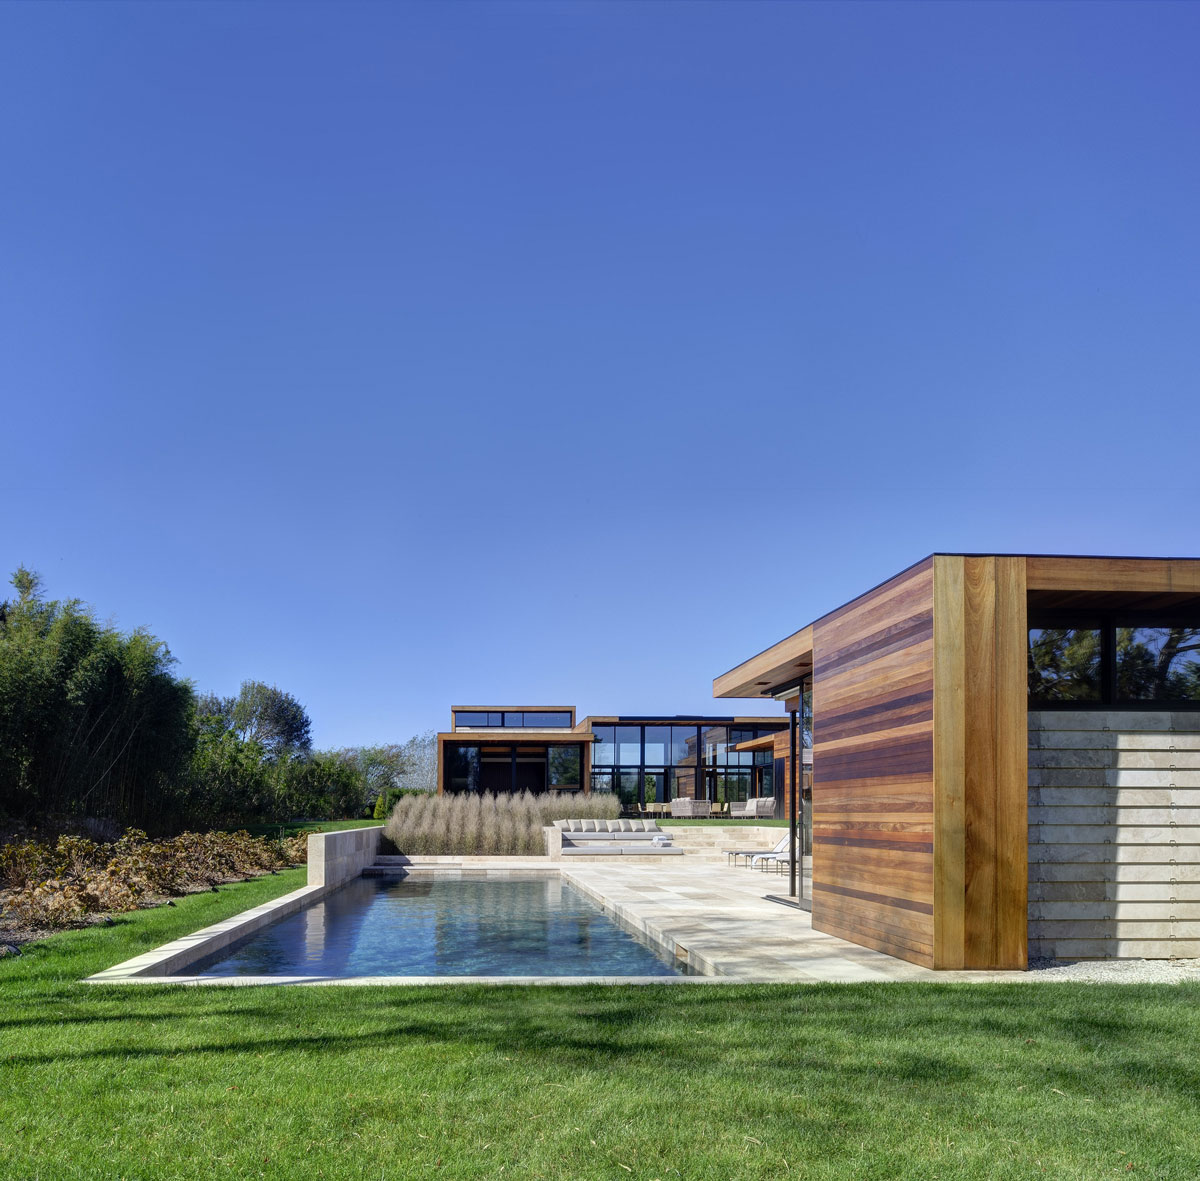 Outdoor Pool, Terrace, Sam's Creek in Bridgehampton, New York by Bates Masi Architects